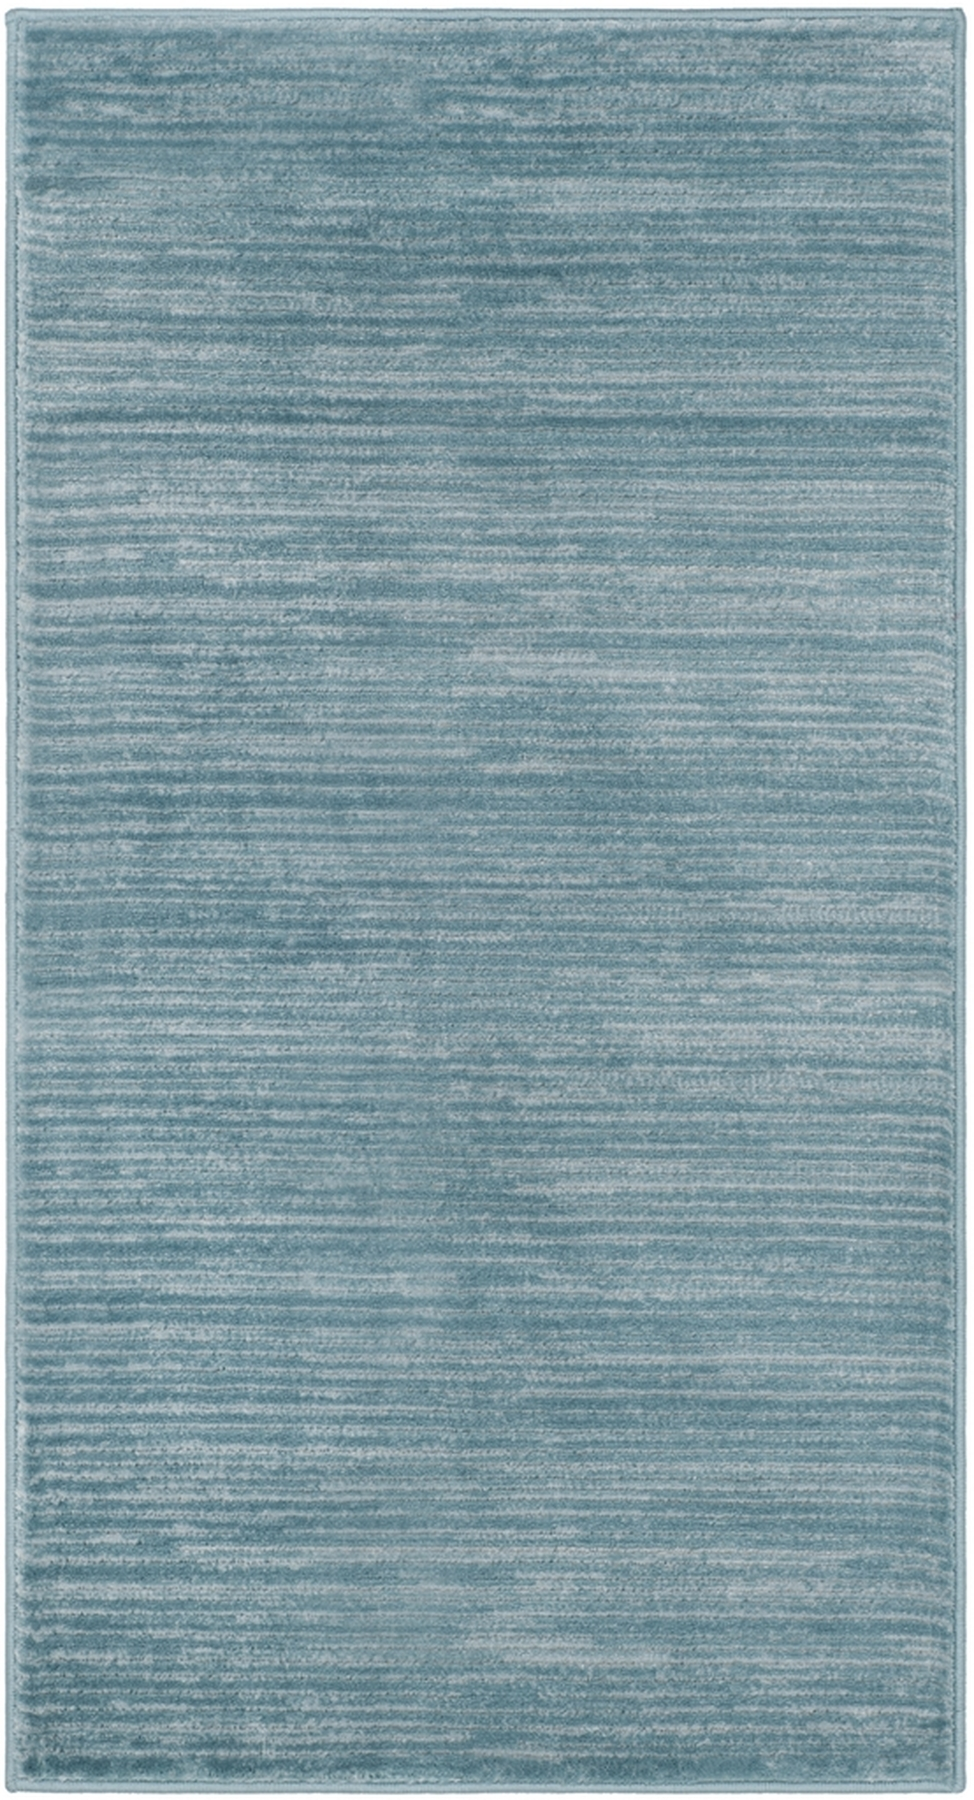 Rug Vsn606b Vision Area Rugs By Safavieh